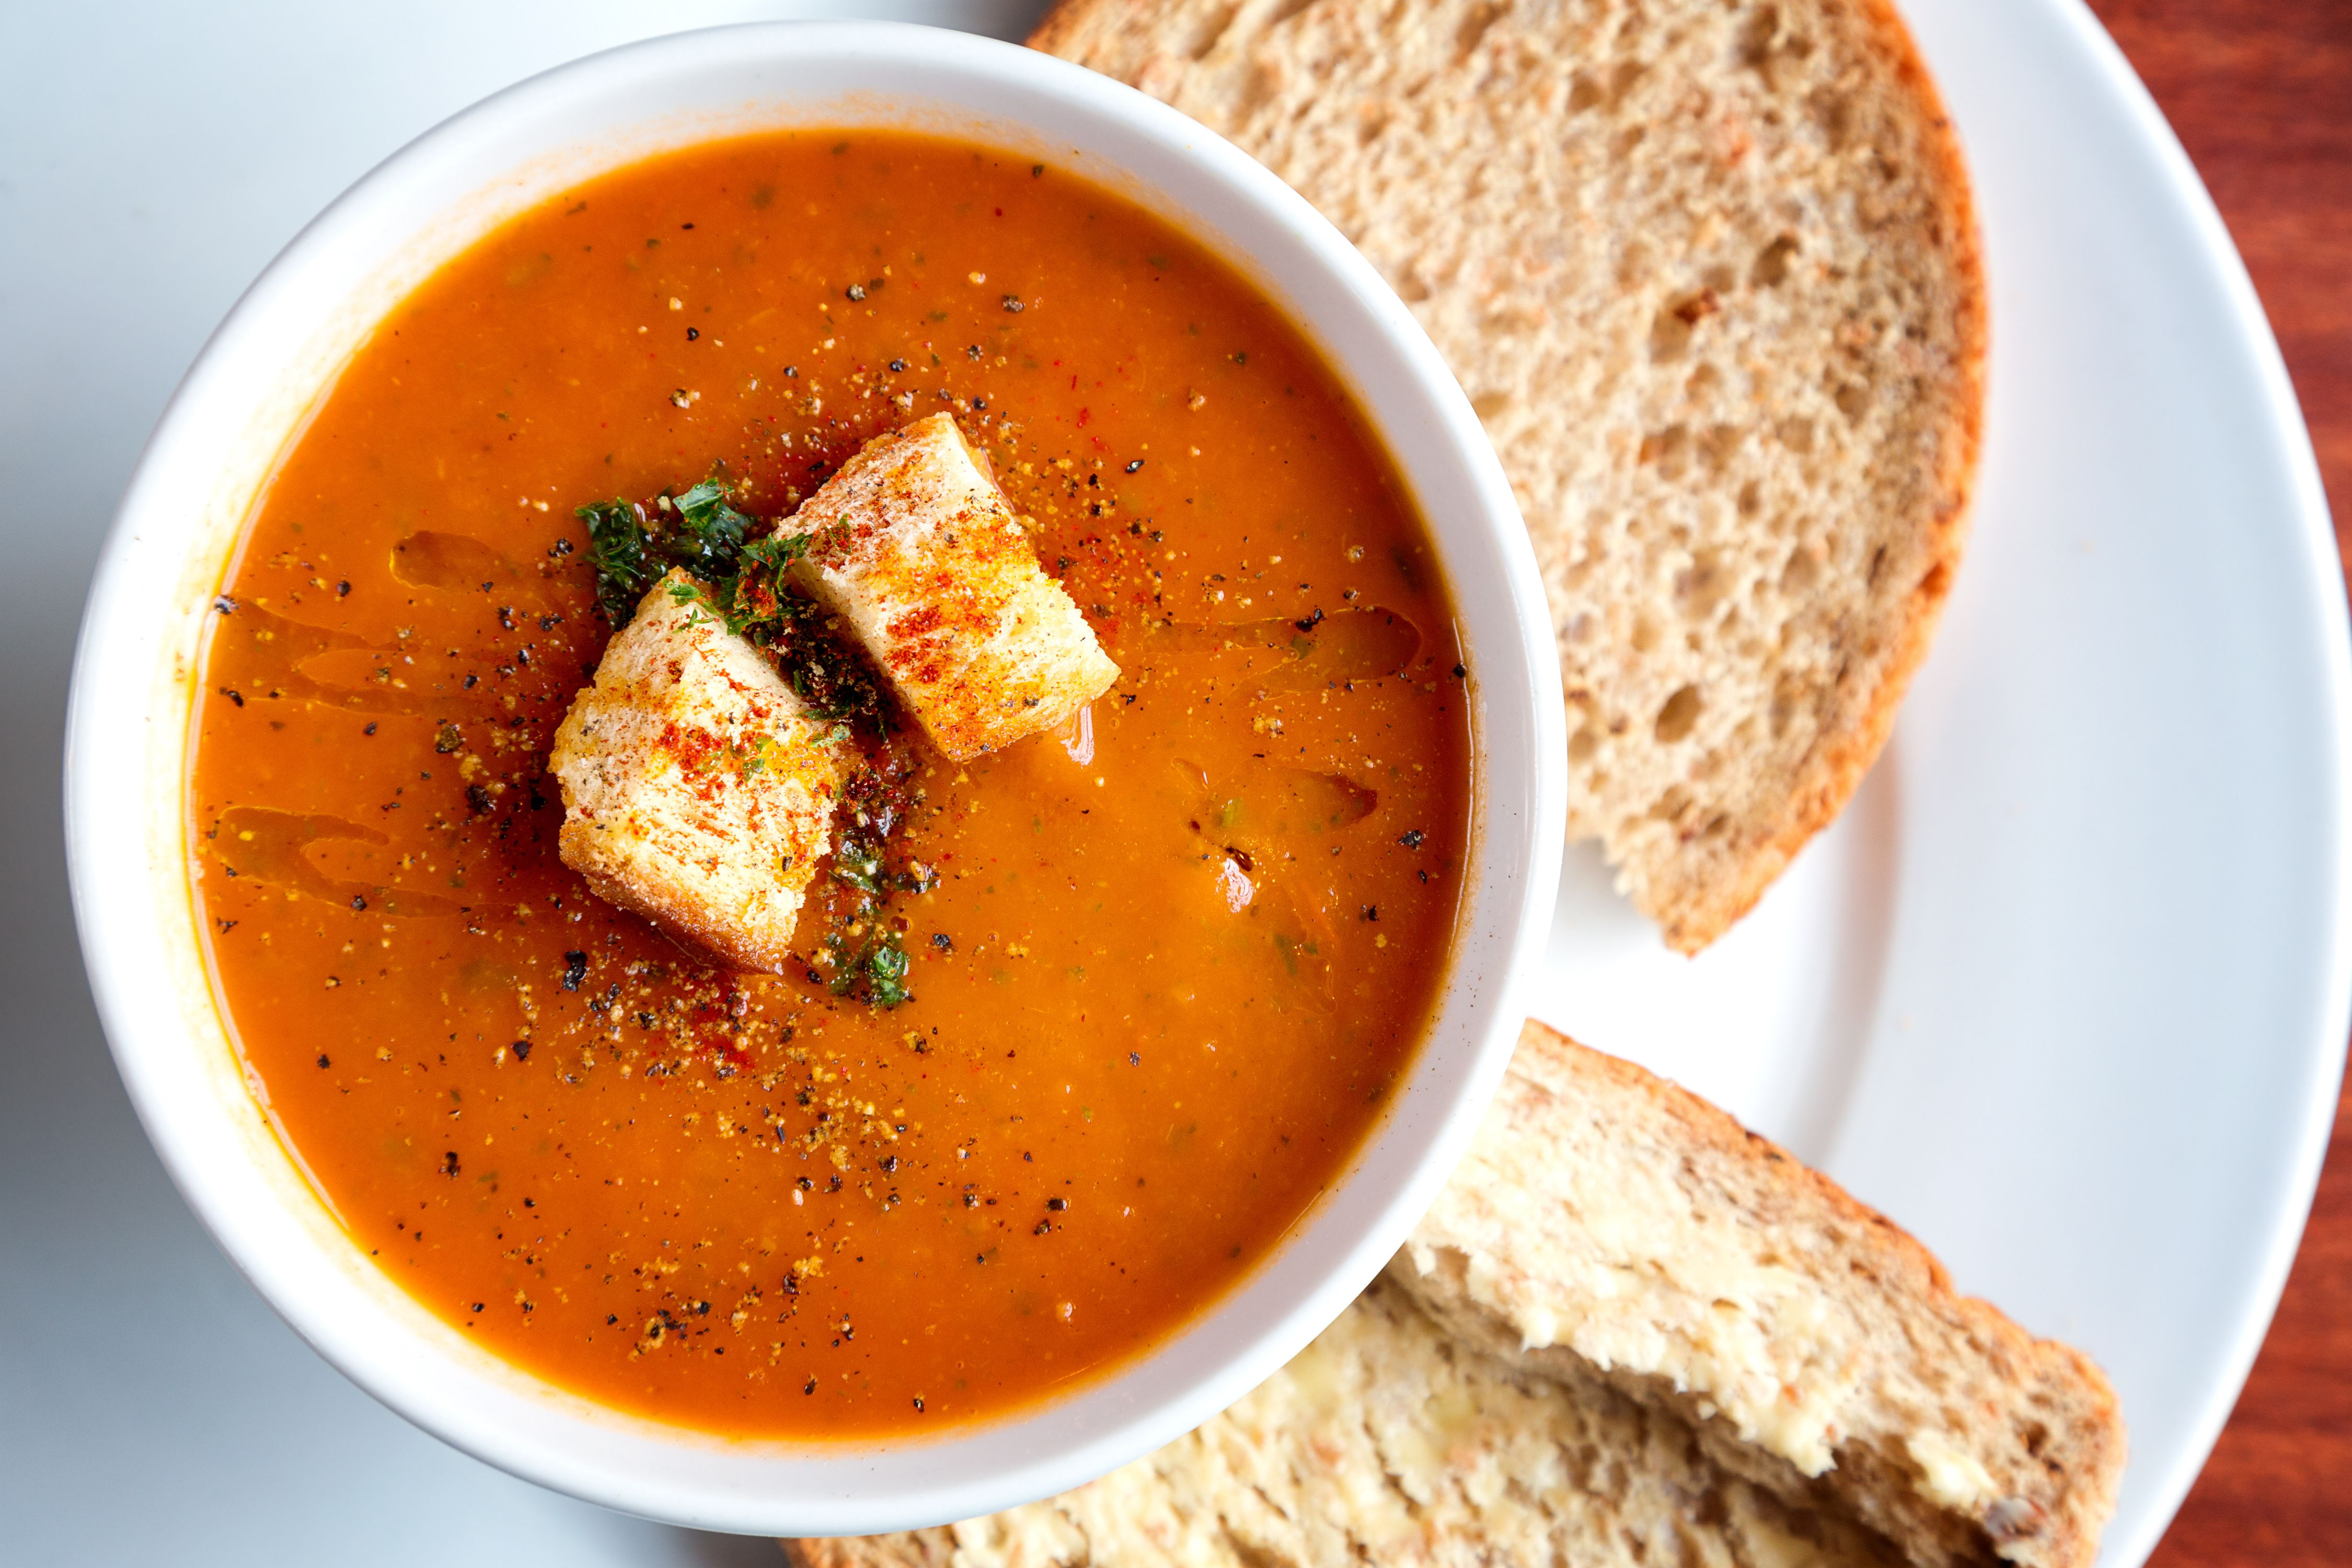 Tomato soup and croutons